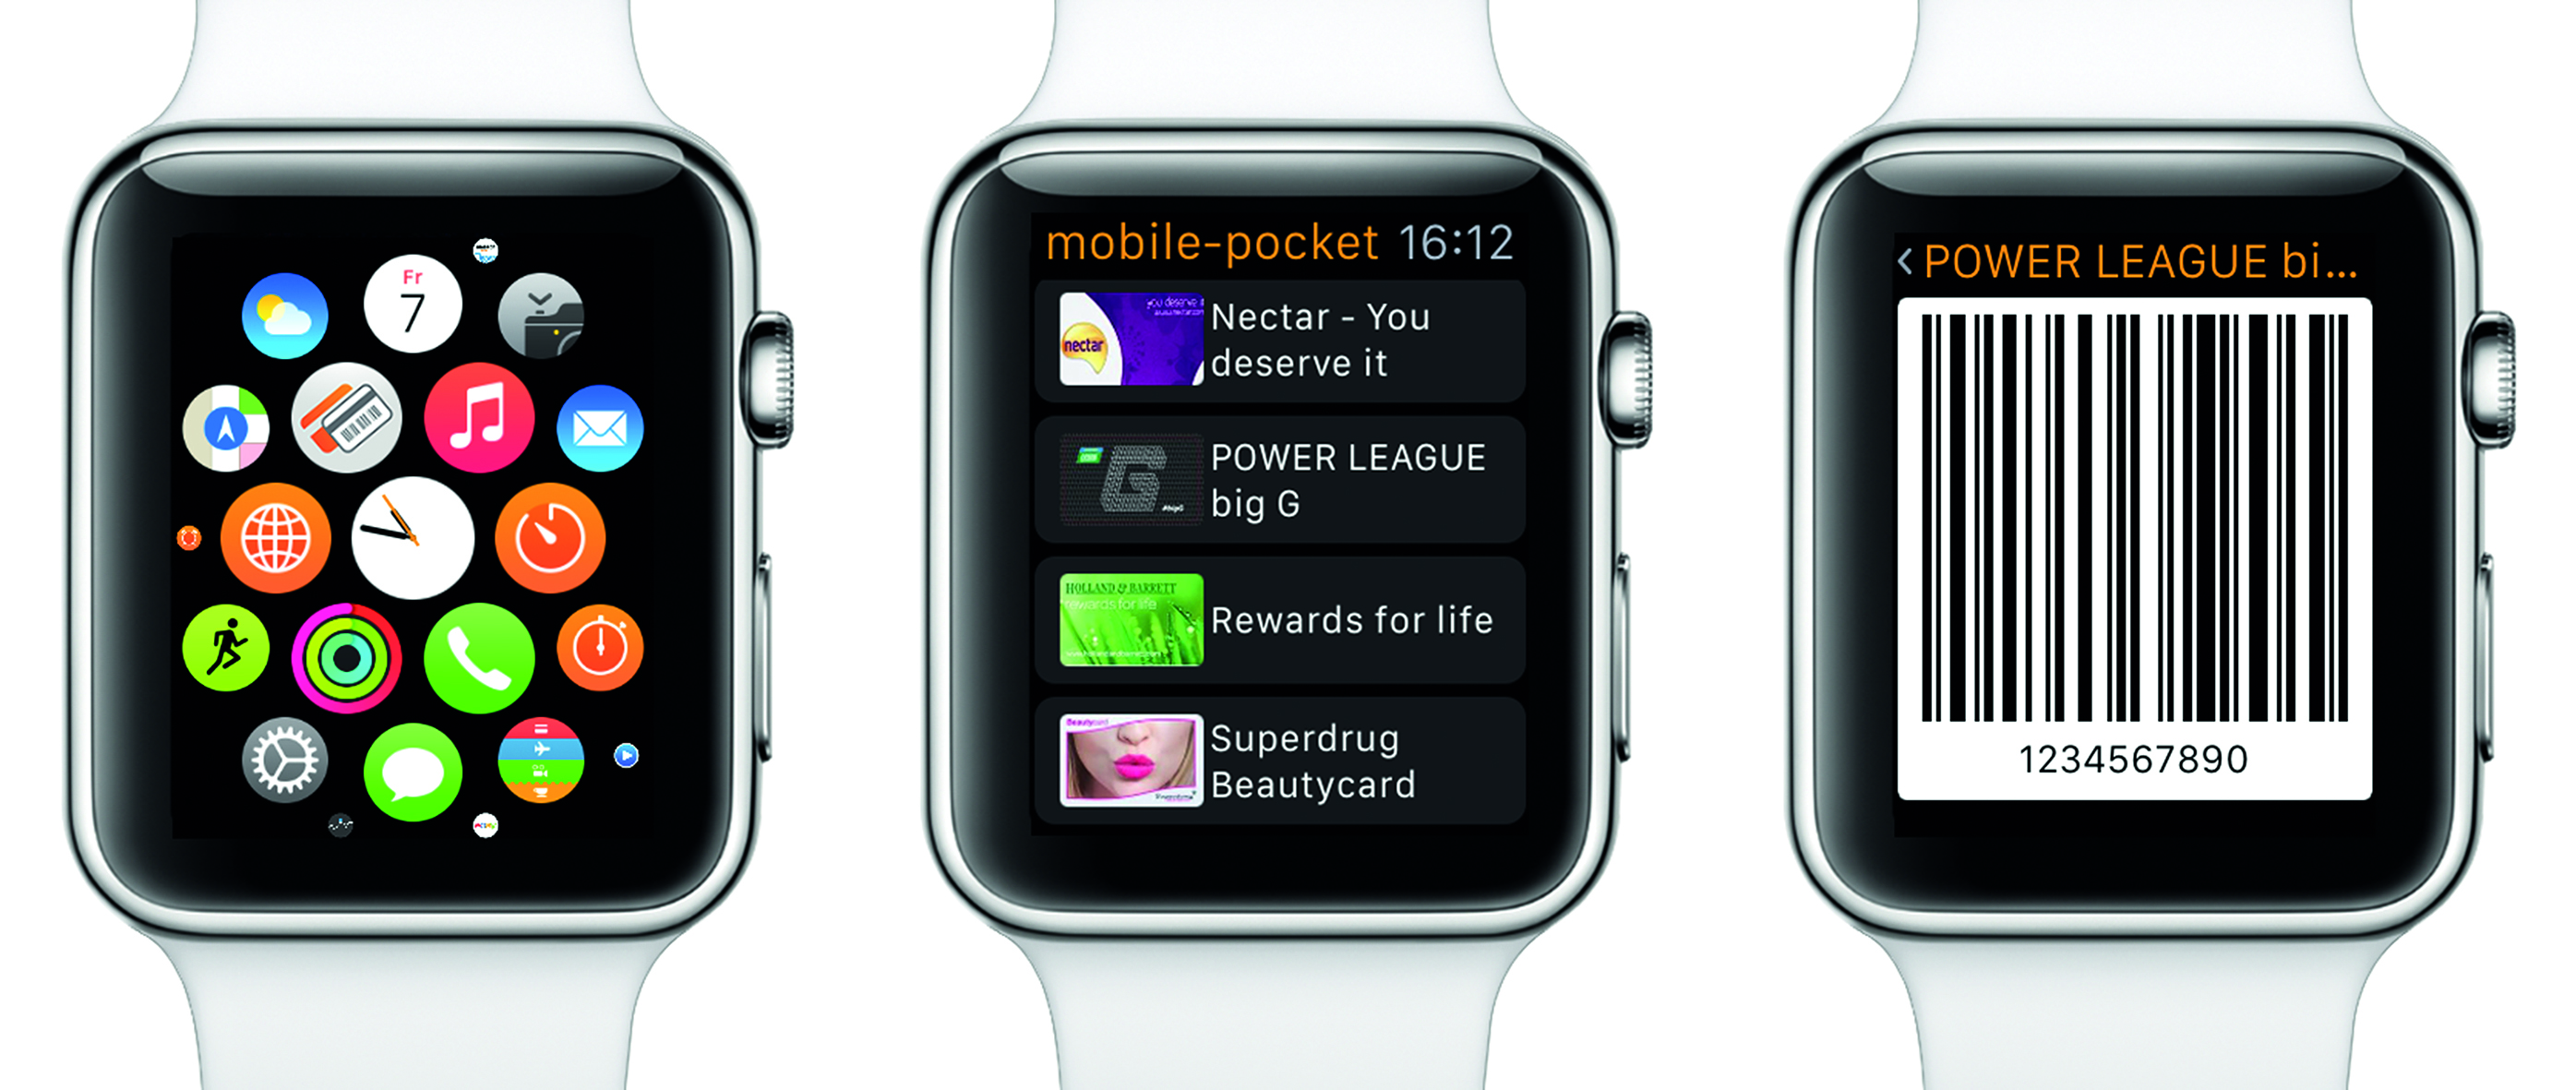 Mobile-pocket Launches Apple Watch Loyalty App